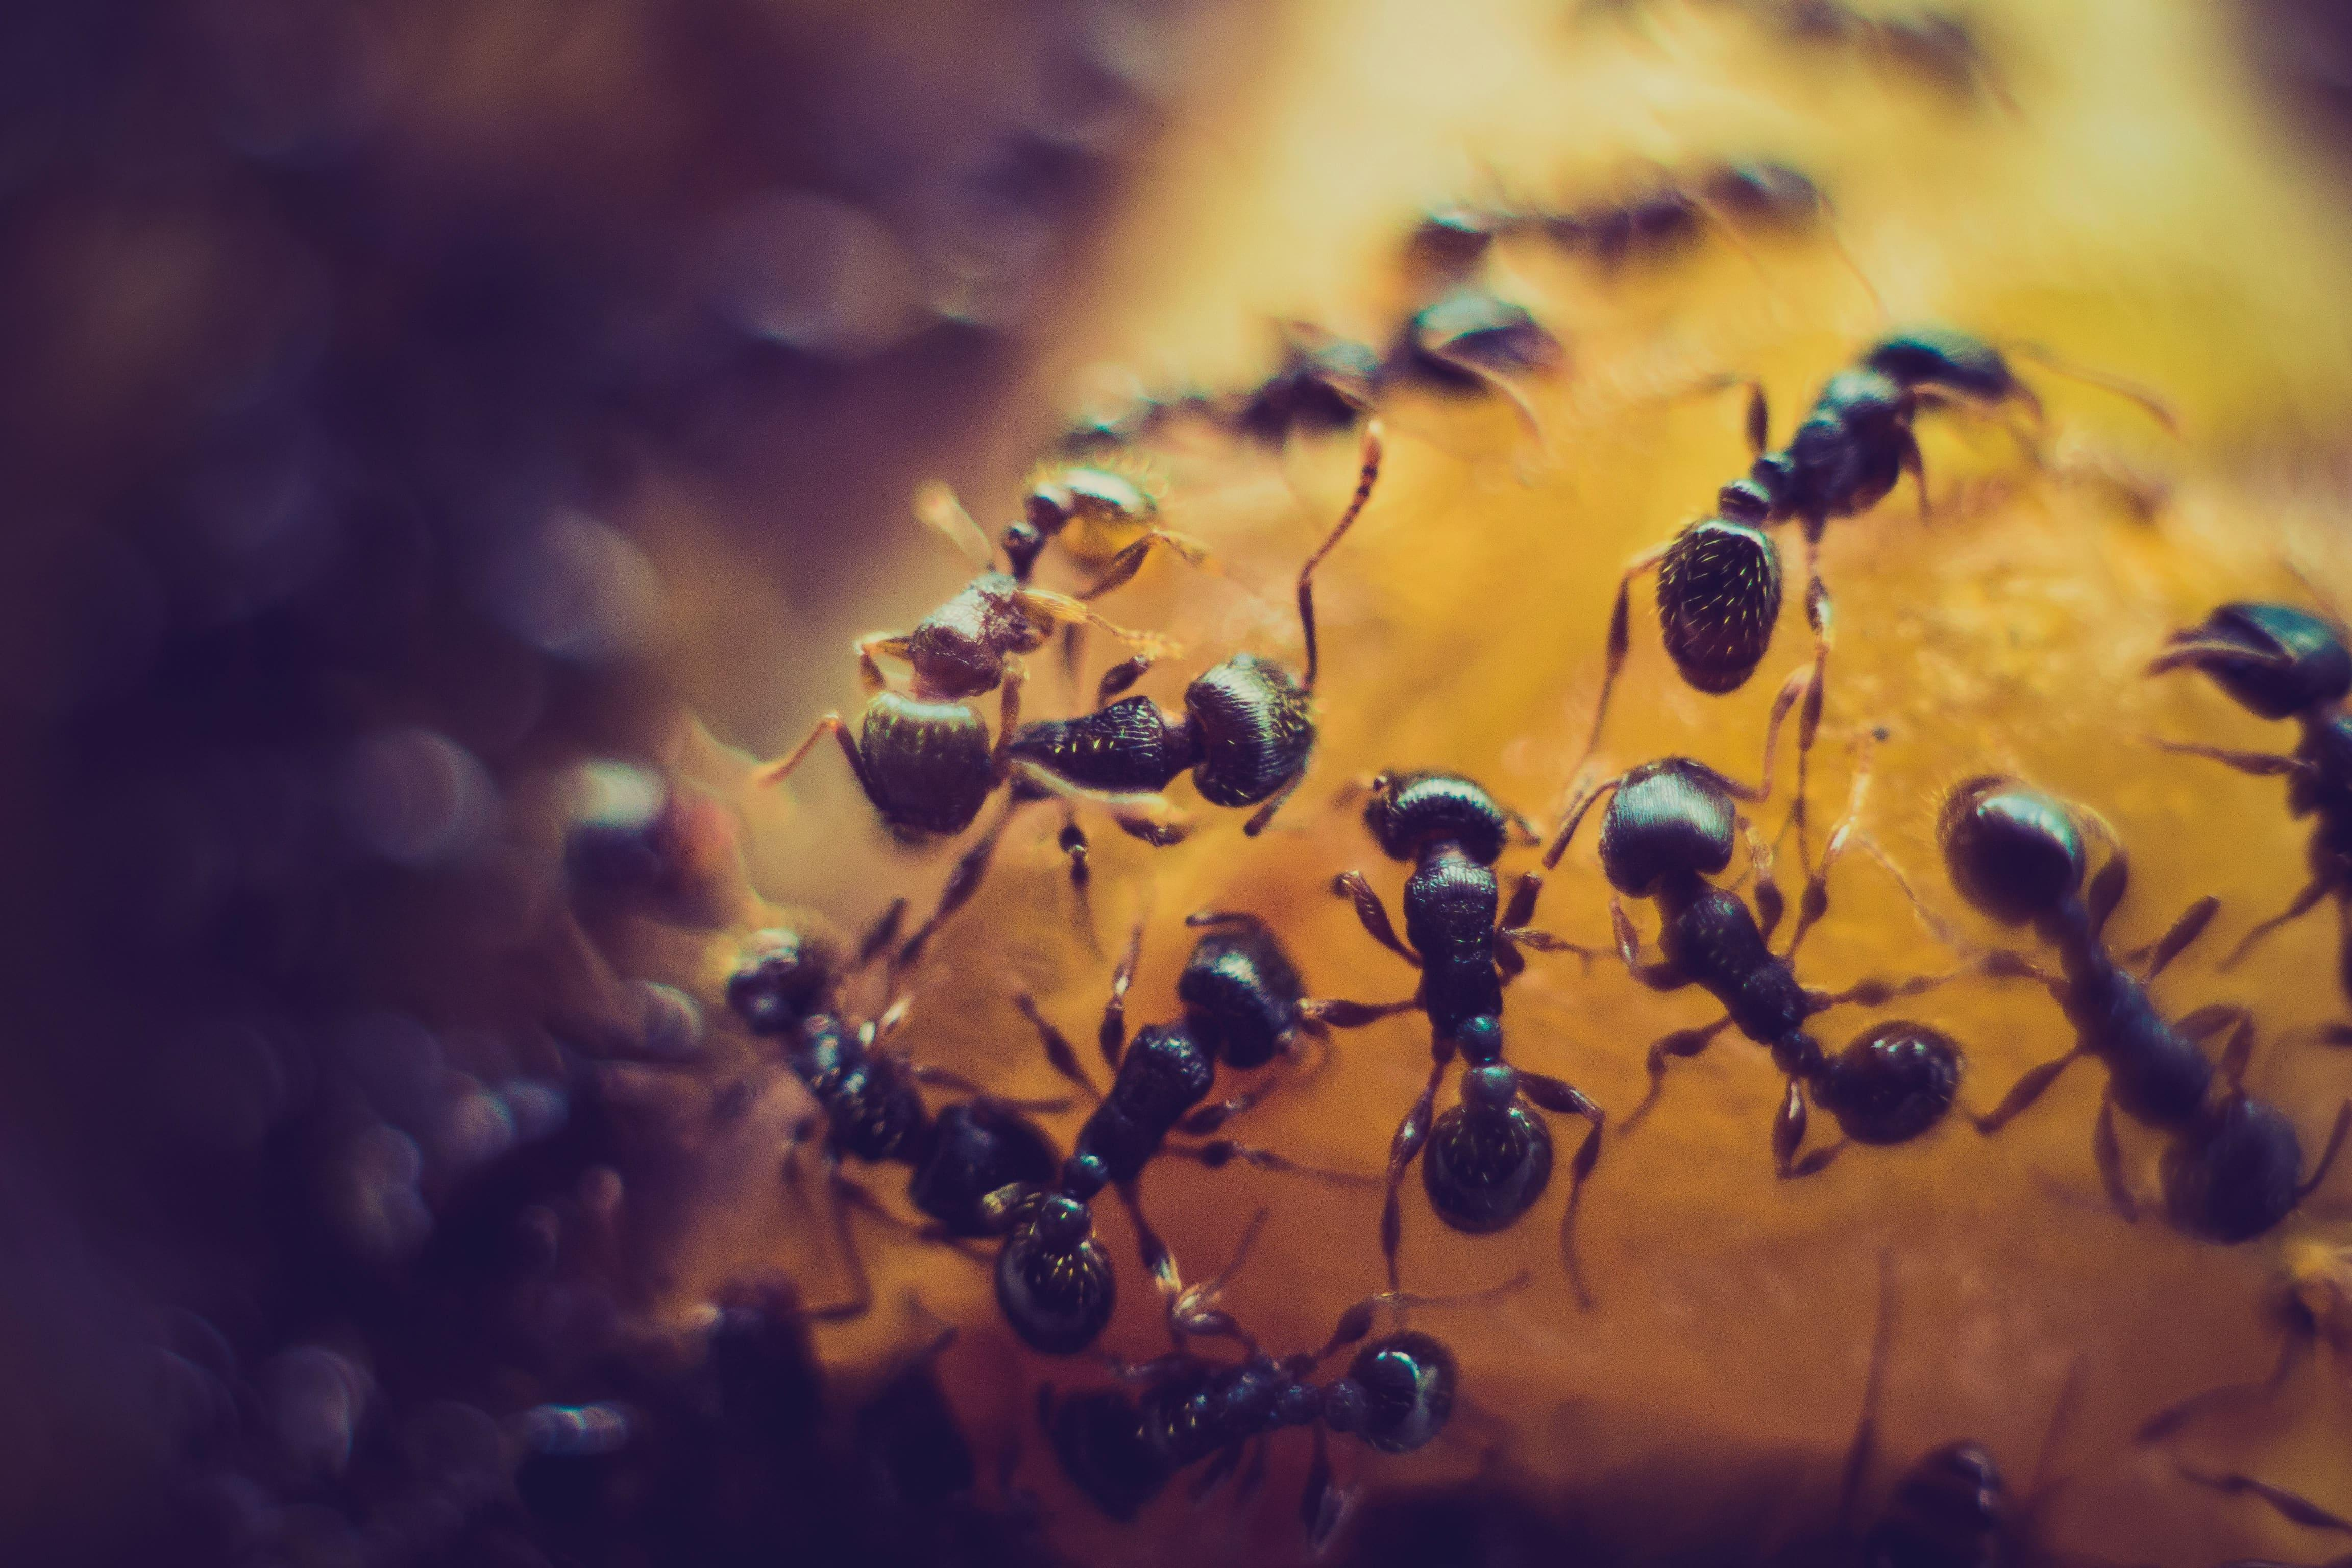 group-of-ants